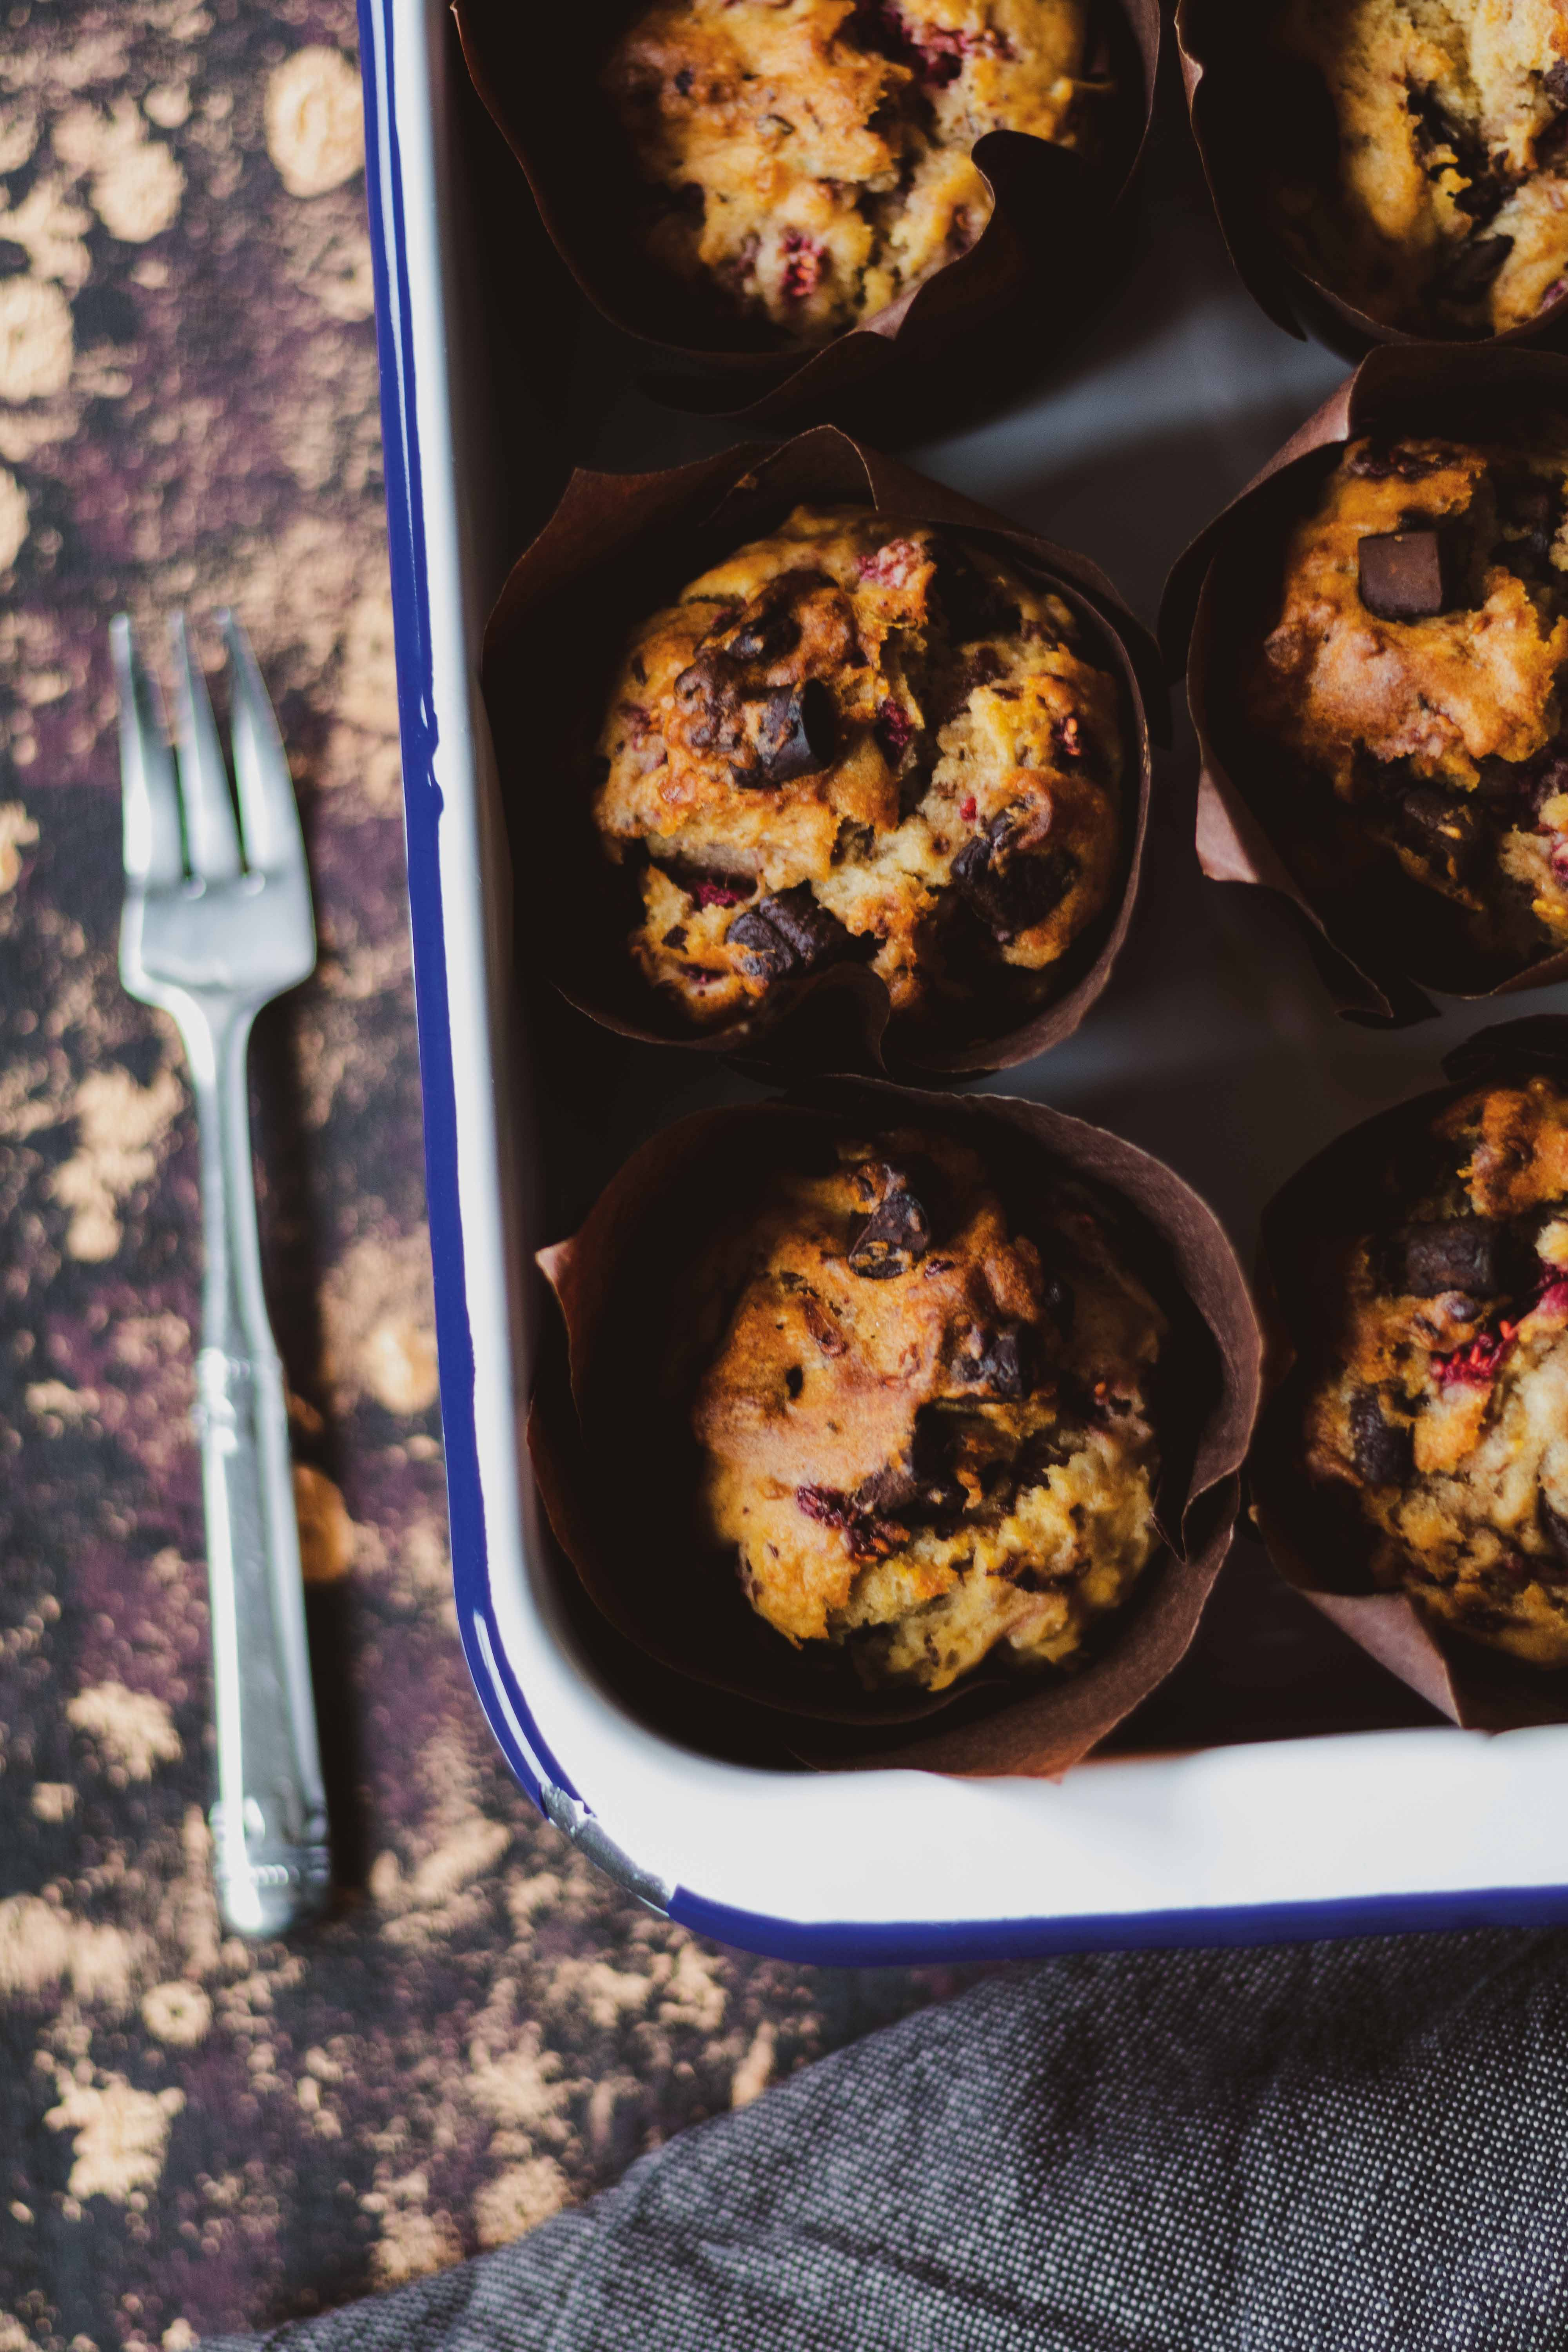 Vegane Himbeer-Muffins mit dunkler Schokolade // Vegan strawberry and dark chocolate Muffins by https://babyrockmyday.com/vegane-himbeer-muffins/